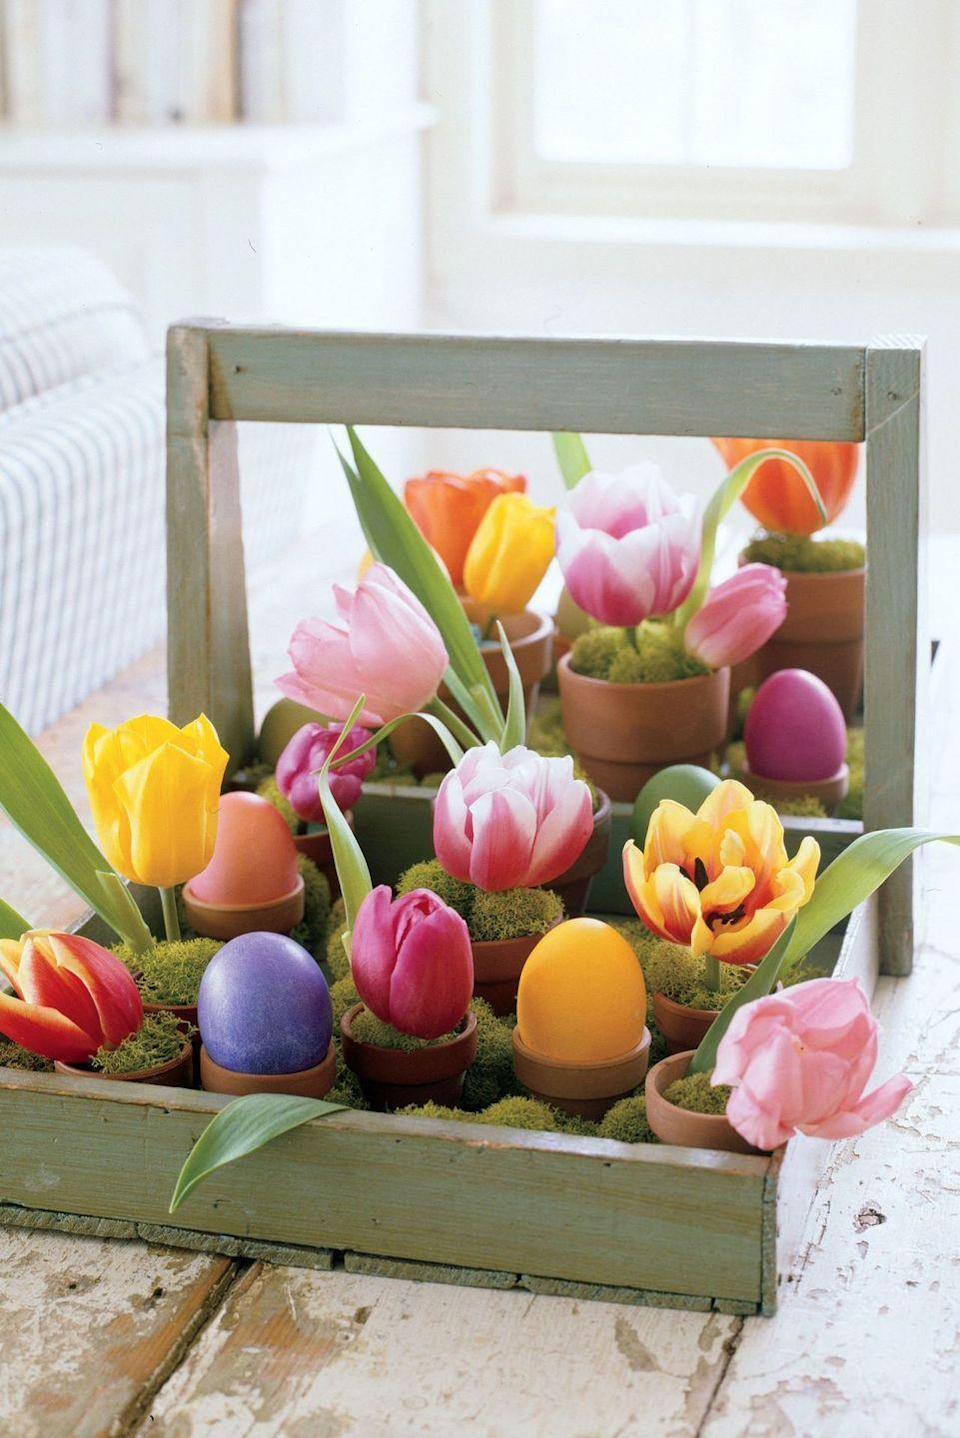 <p>With tulips and colored eggs, a berry tray becomes a cheery centerpiece to brighten any tabletop. Place tiny terra-cotta pots inside the a wooden tray, filling the spaces in between with mounds of decorative moss. In about half the containers, perch dyed eggs; in the other half, insert dampened floral foam, tulip blossoms, and more moss. </p>